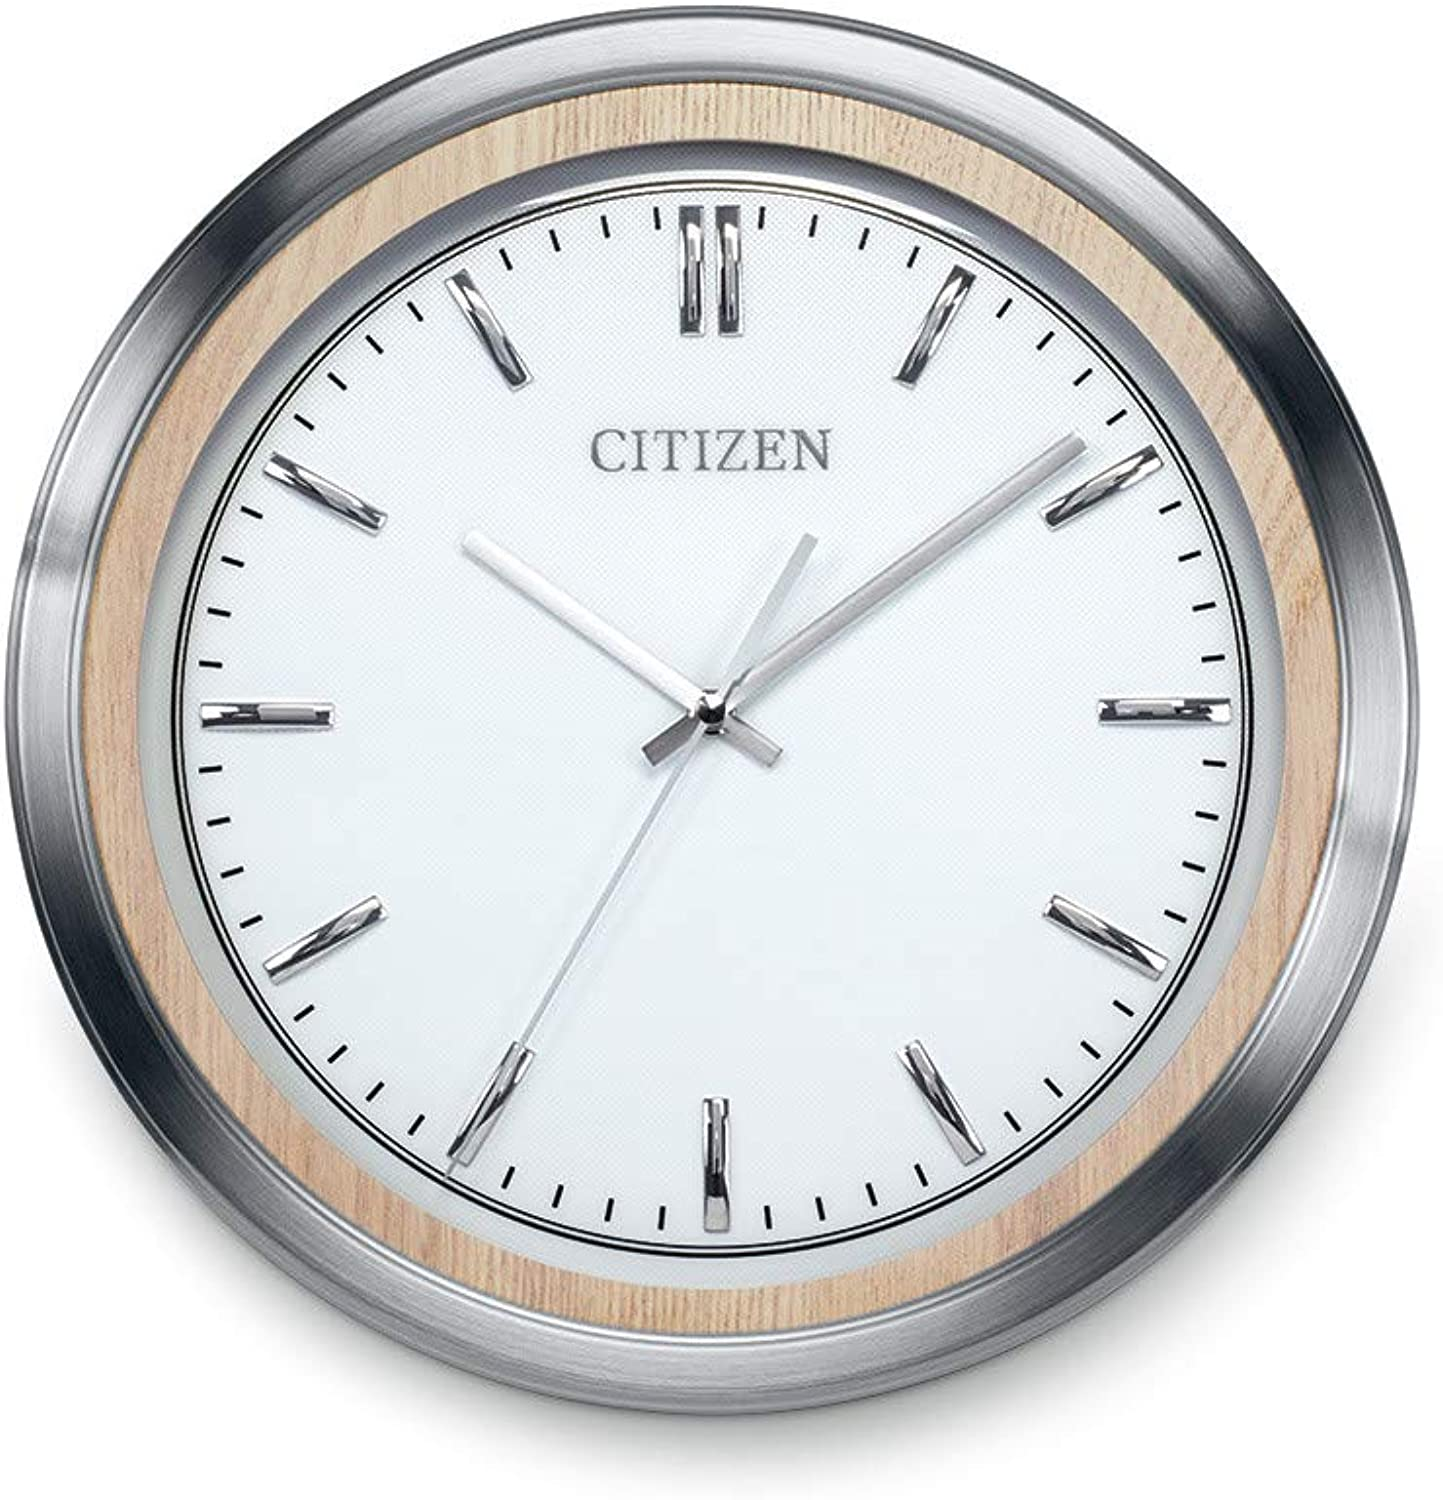 Citizen Gallery Wall Clock Light Beige Wood and Silver Tone Frame CC2009